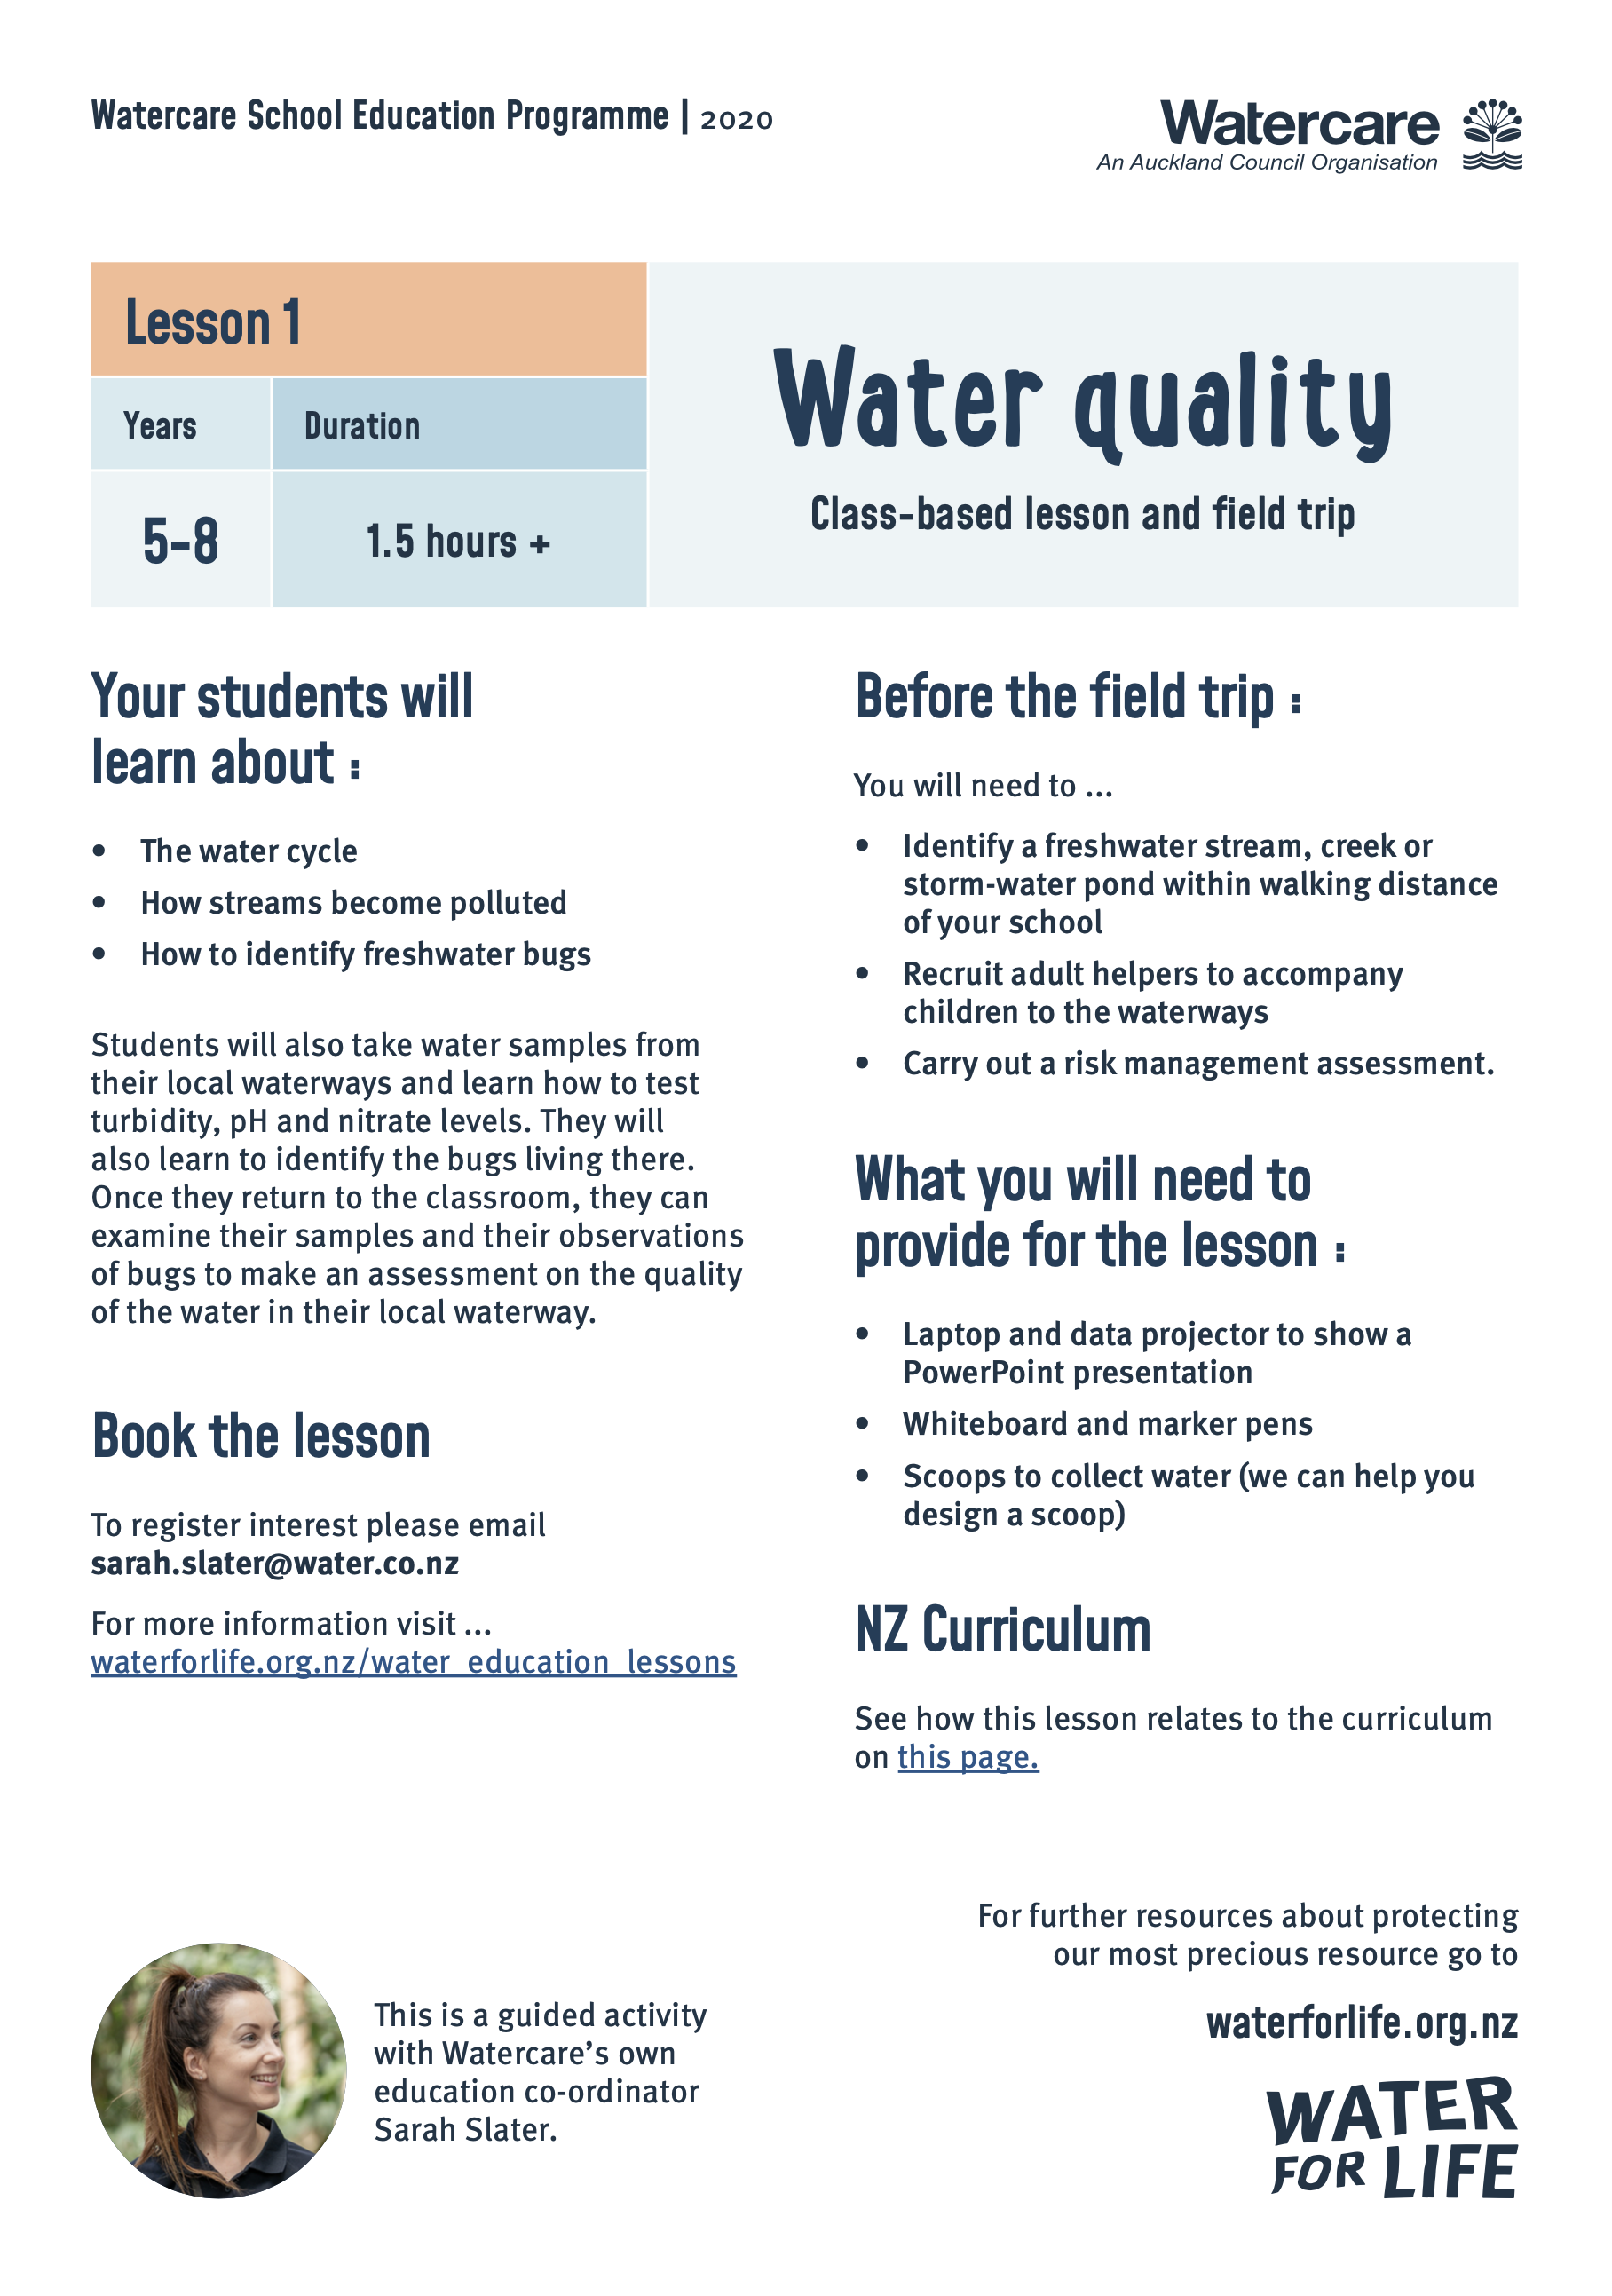 WFL_edu_Lesson1_WaterQuality.pdf